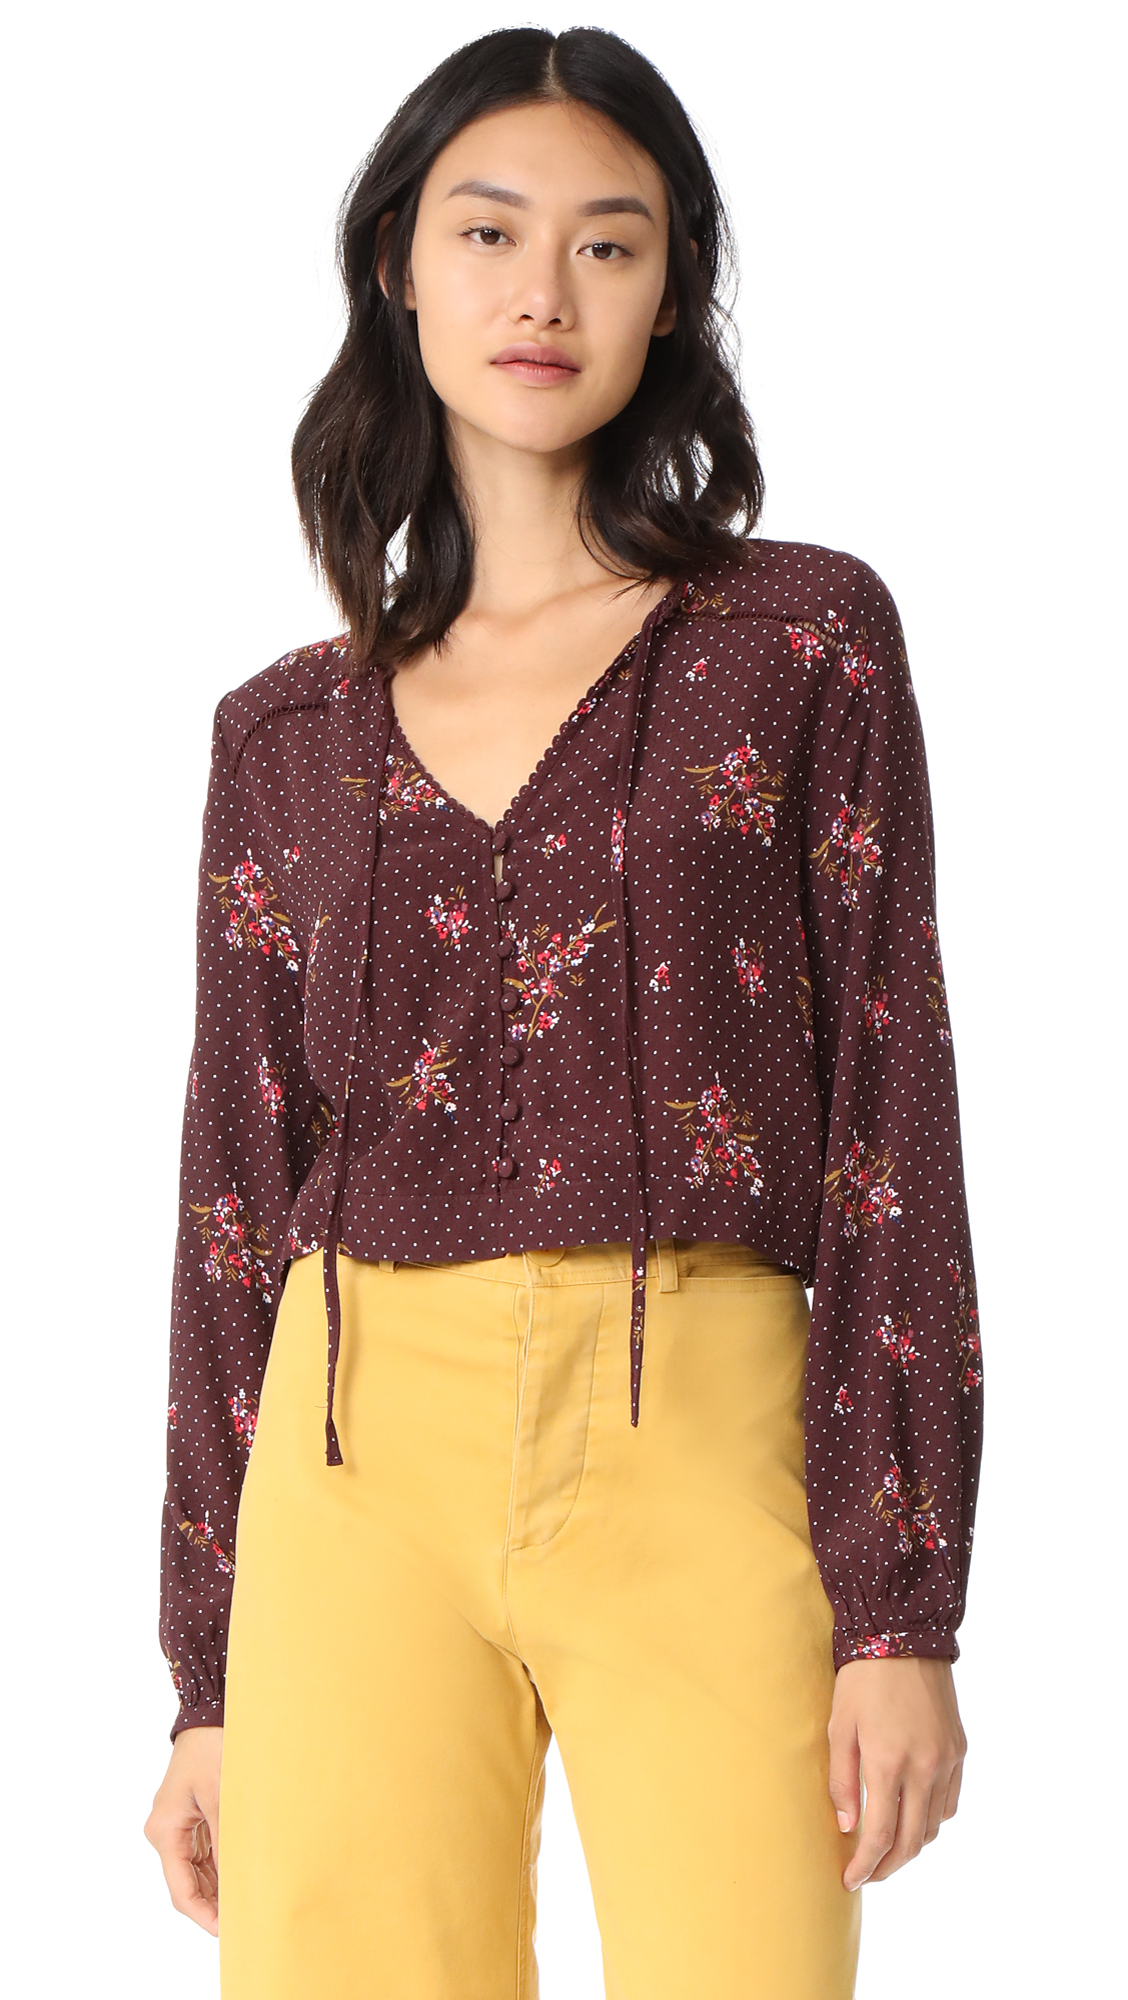 Knot Sisters Willow Top - Burgundy Canyon Floral